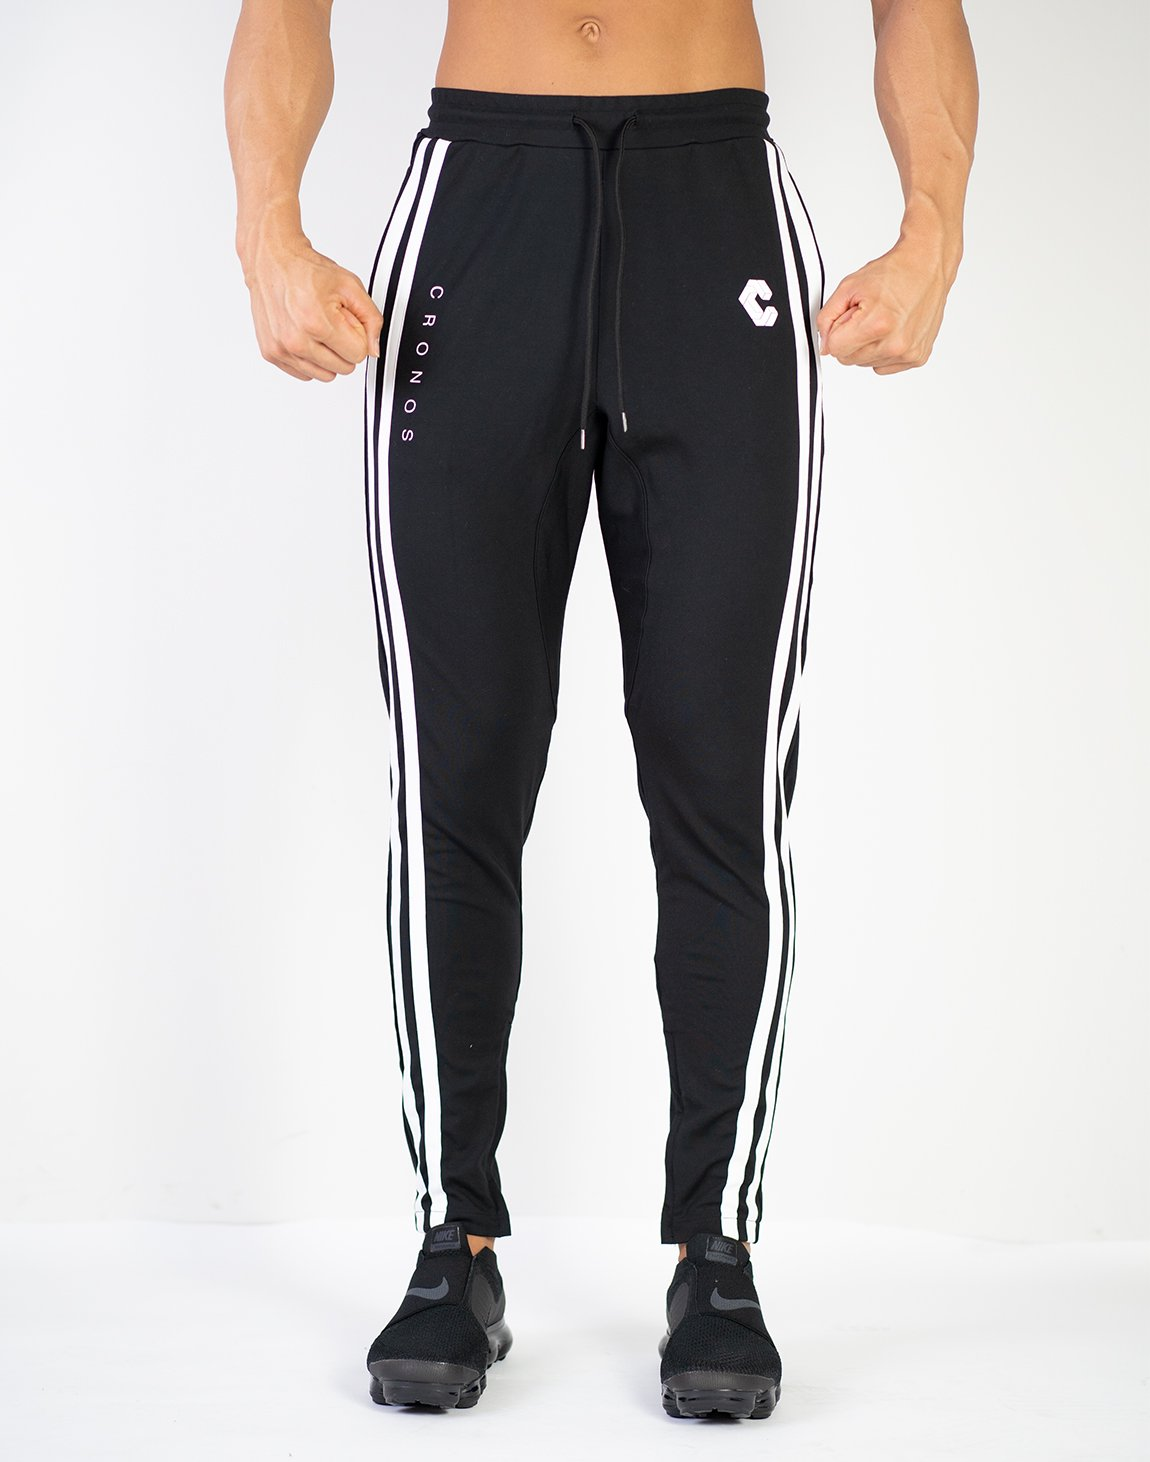 <img class='new_mark_img1' src='https://img.shop-pro.jp/img/new/icons1.gif' style='border:none;display:inline;margin:0px;padding:0px;width:auto;' />MODE  2STRIPE PANTS (SUMMER FABRIC)BLACK